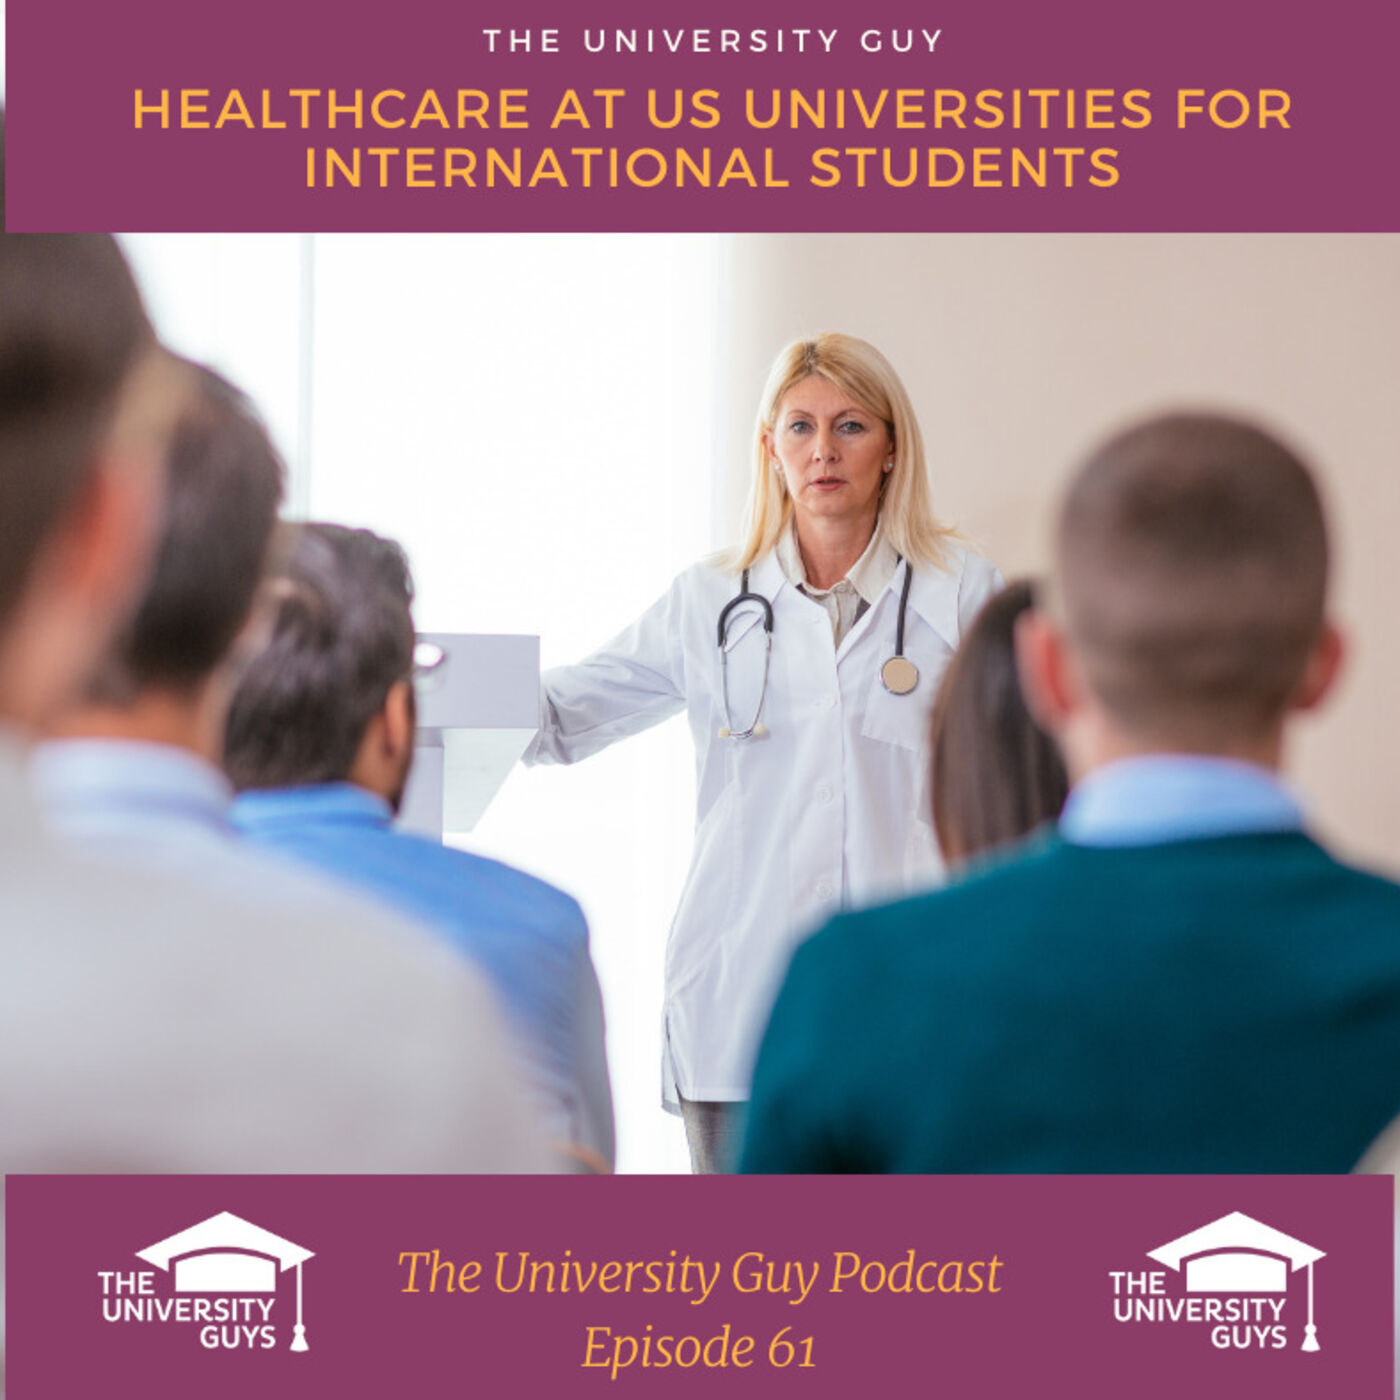 Episode 61: Healthcare in the USA